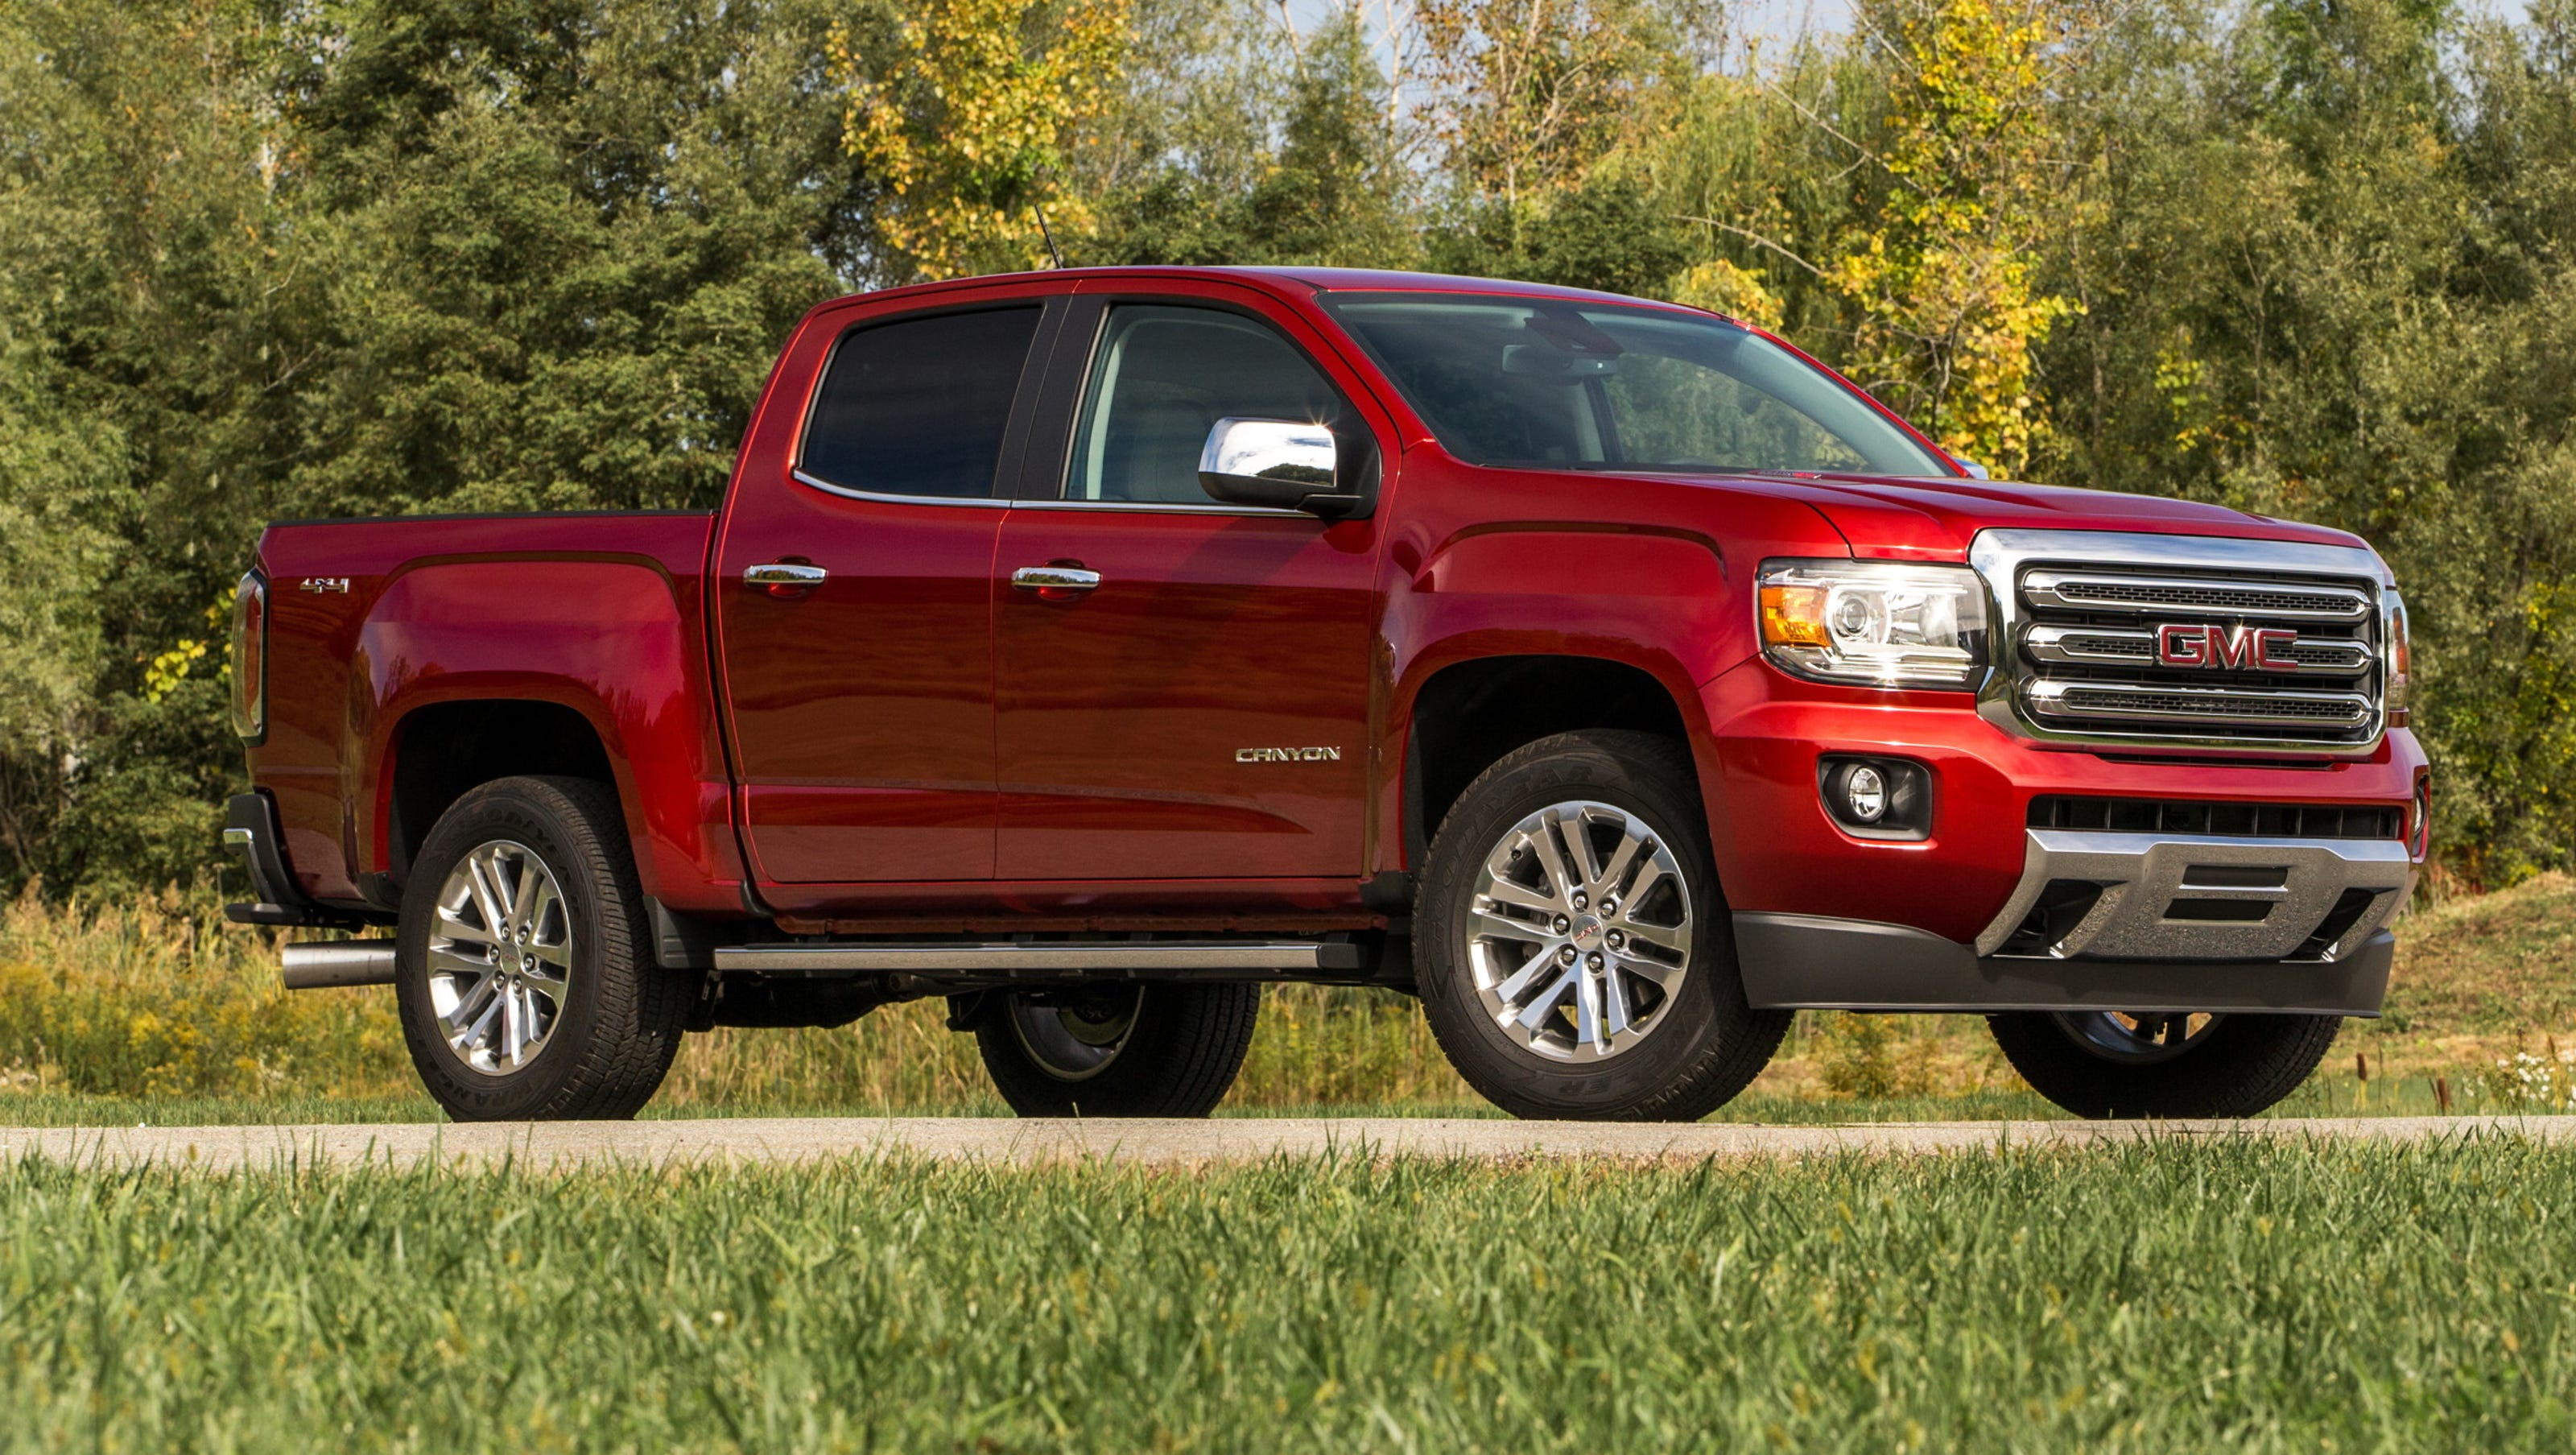 Review Diesel suits 2016 GMC Canyon pickup